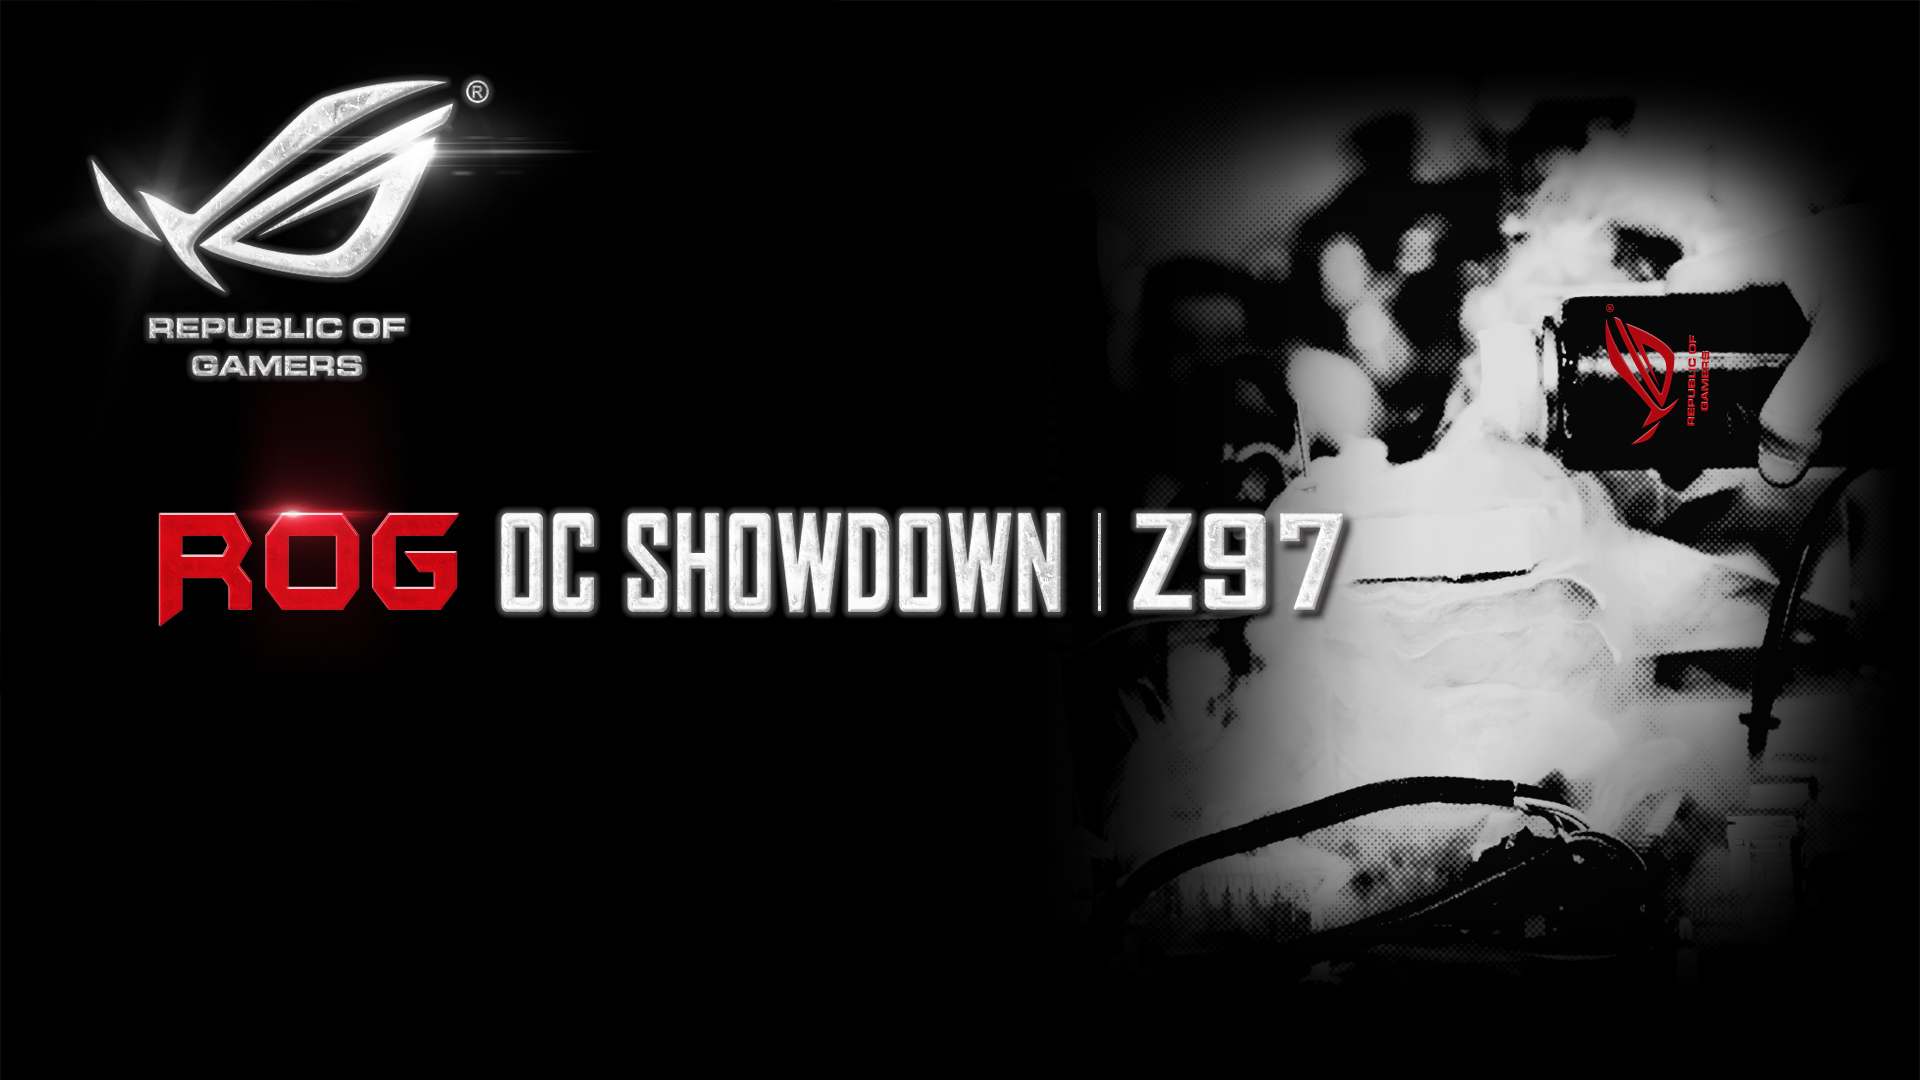 PR ASUS Launches ROG OC Showdown Online Overclocking Competition ROG Republic Of Gamers Global